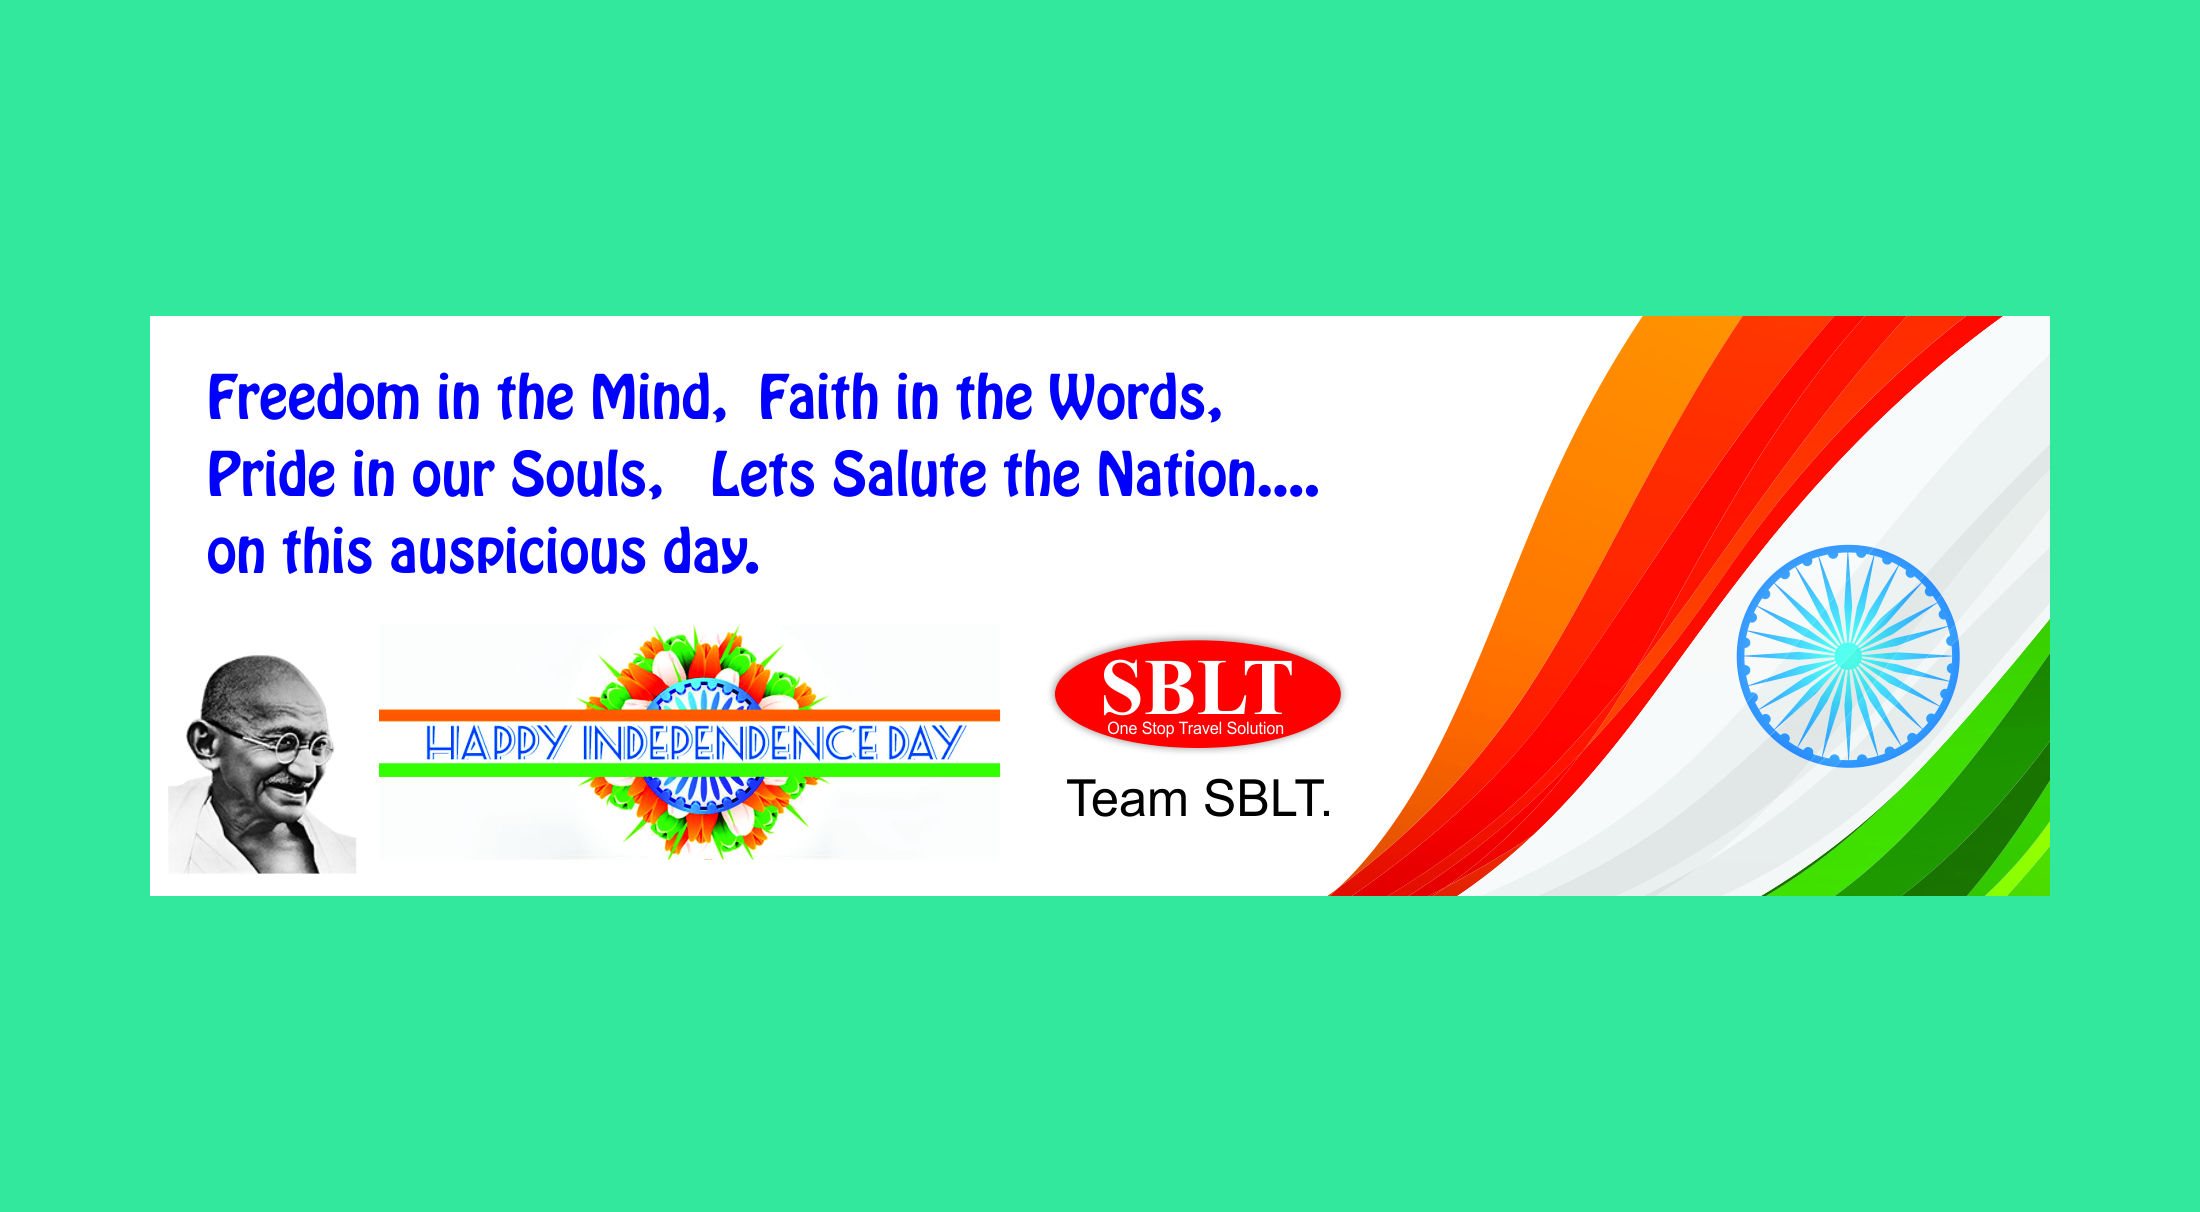 SBLT Independence Day Wishes